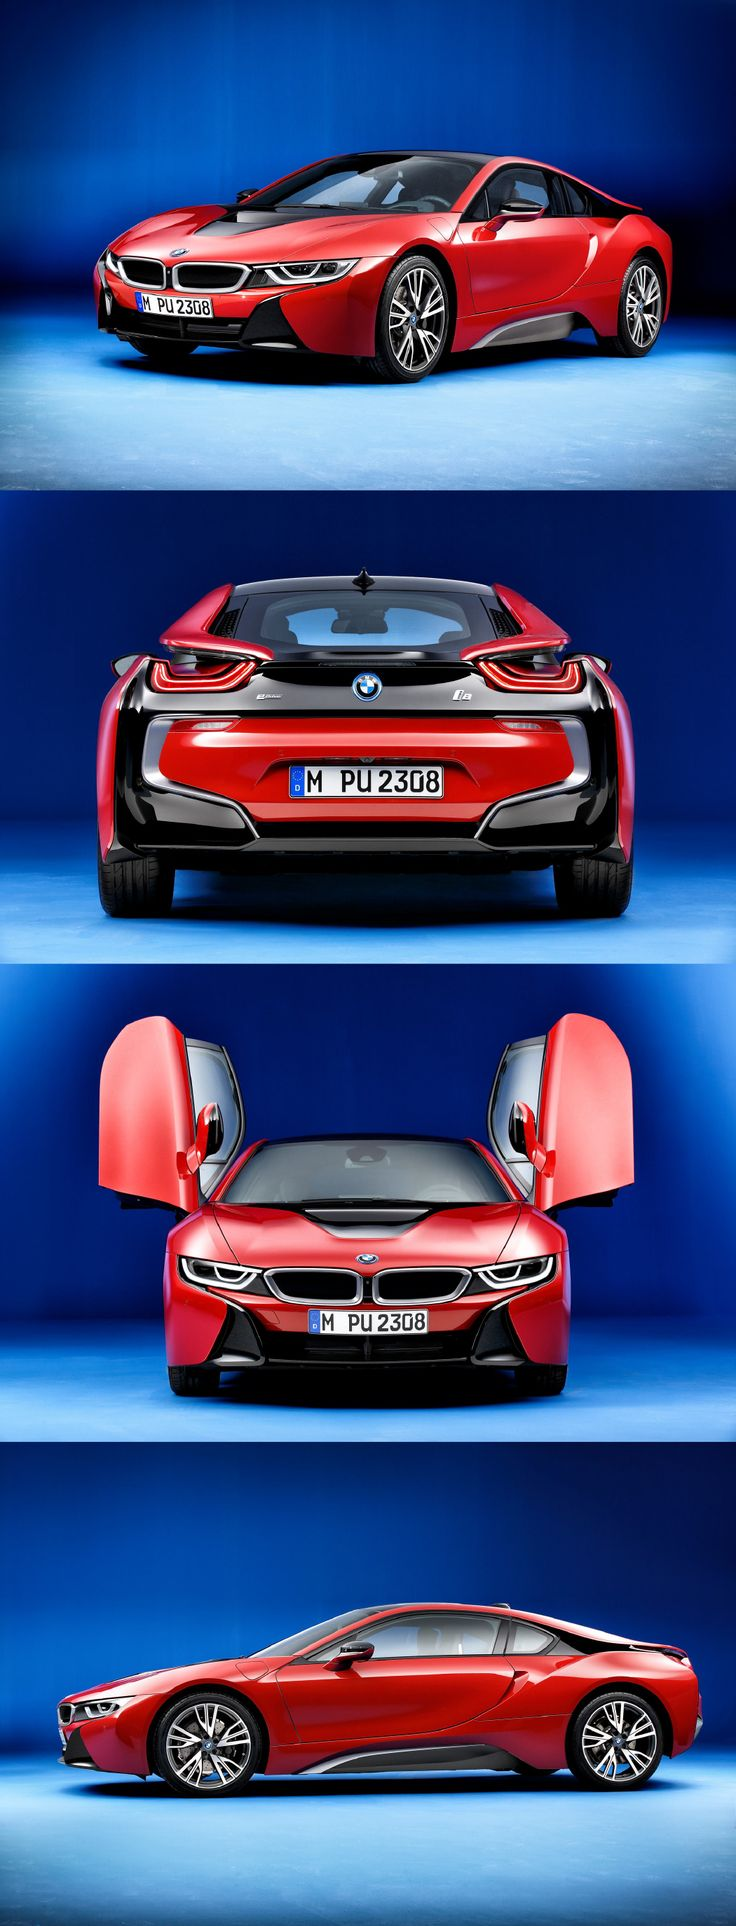 """Featuring an entirely exclusive paint color and unique interior upholstery and trim, the 2016 BMW i8 """"Protonic Red"""" edition will only be available in limited numbers, and is sure to turn heads it goes. Bmw I8 